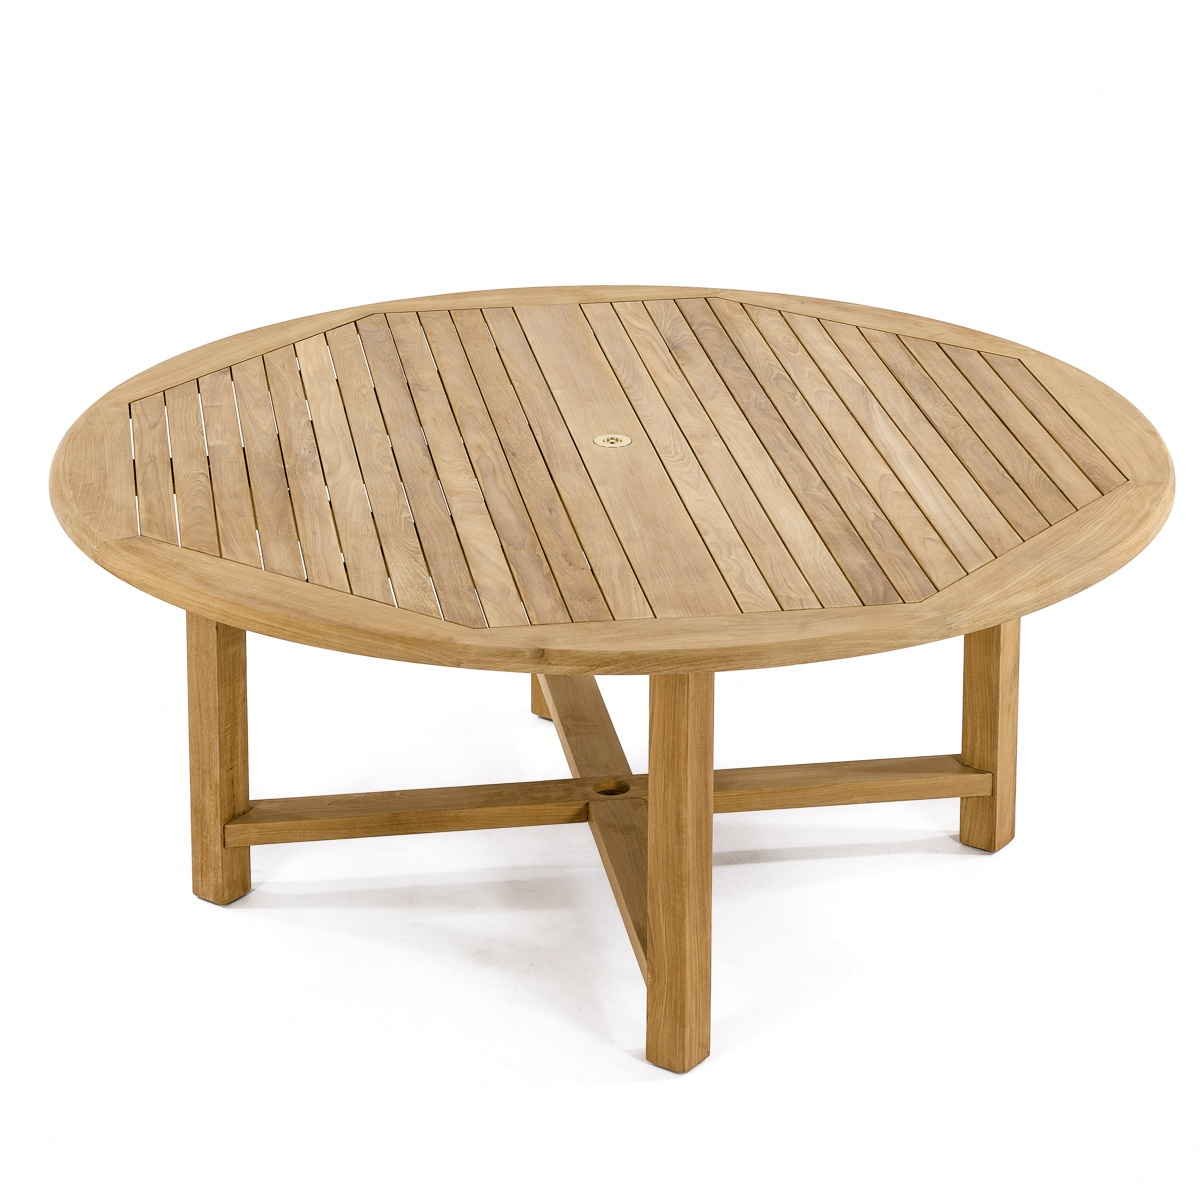 Buckingham 6 Foot Diameter Round Teak Outdoor Tab